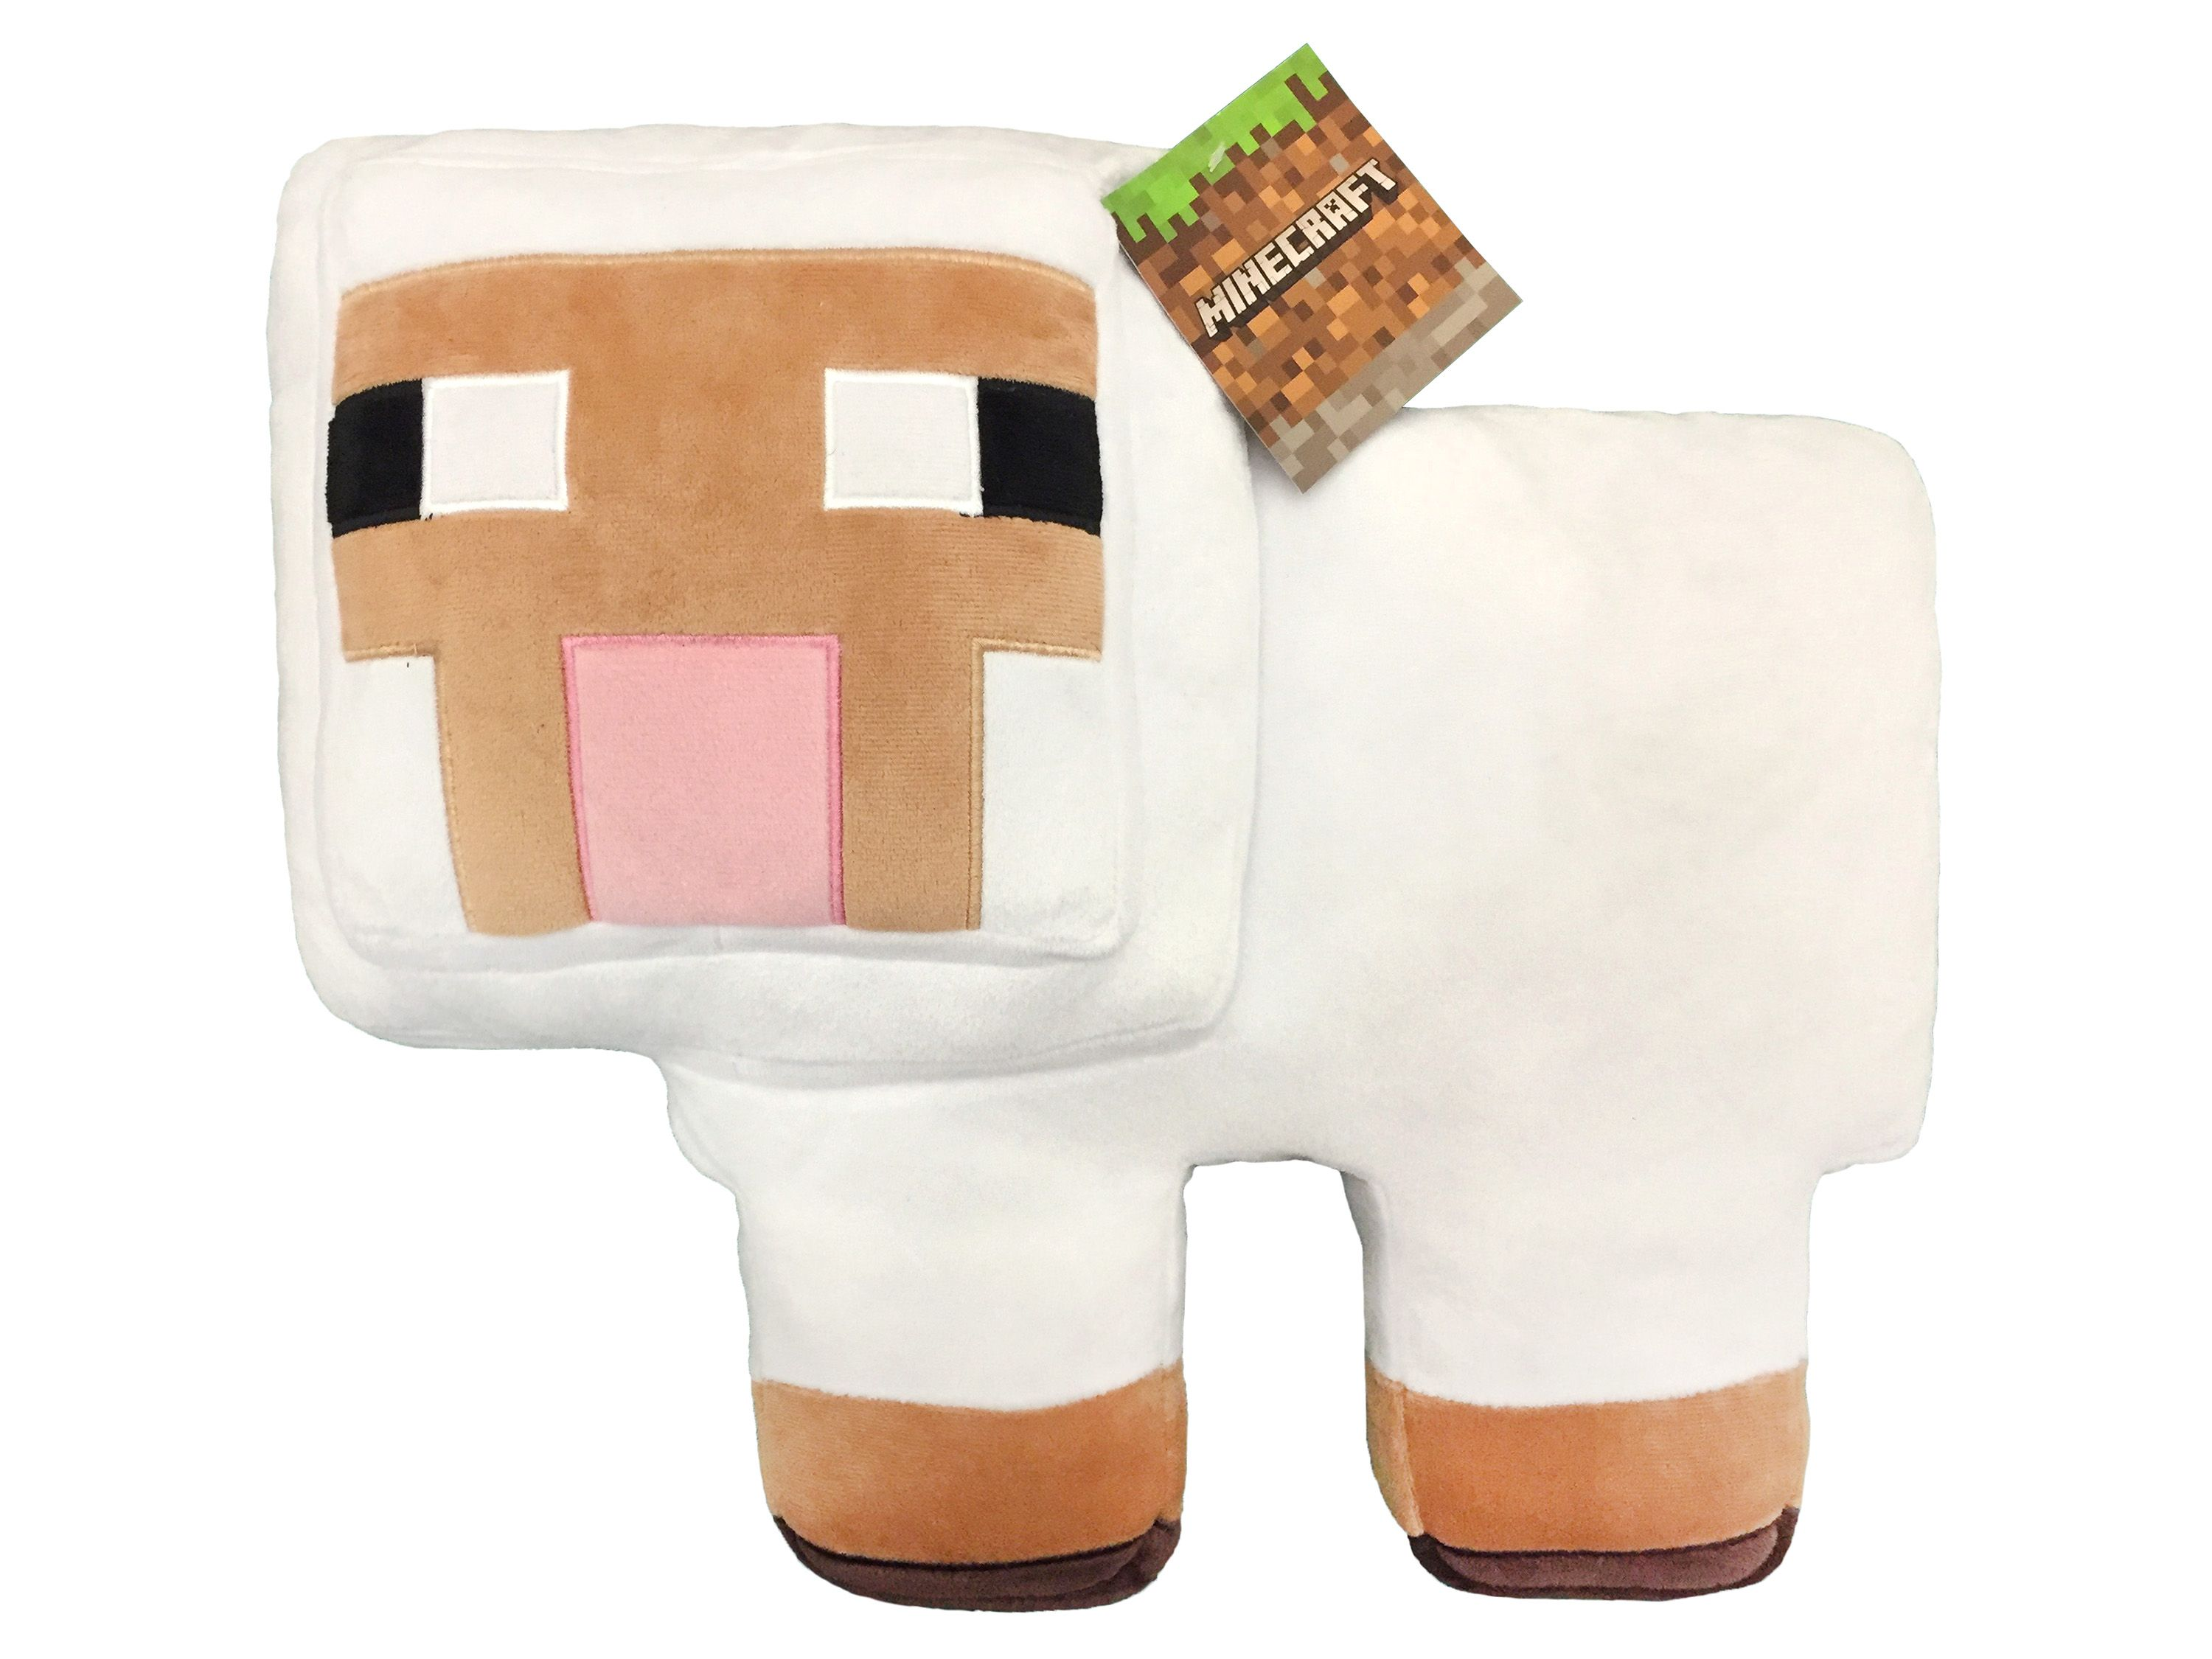 Home (With images) Plush pillows, Minecraft sheep, White